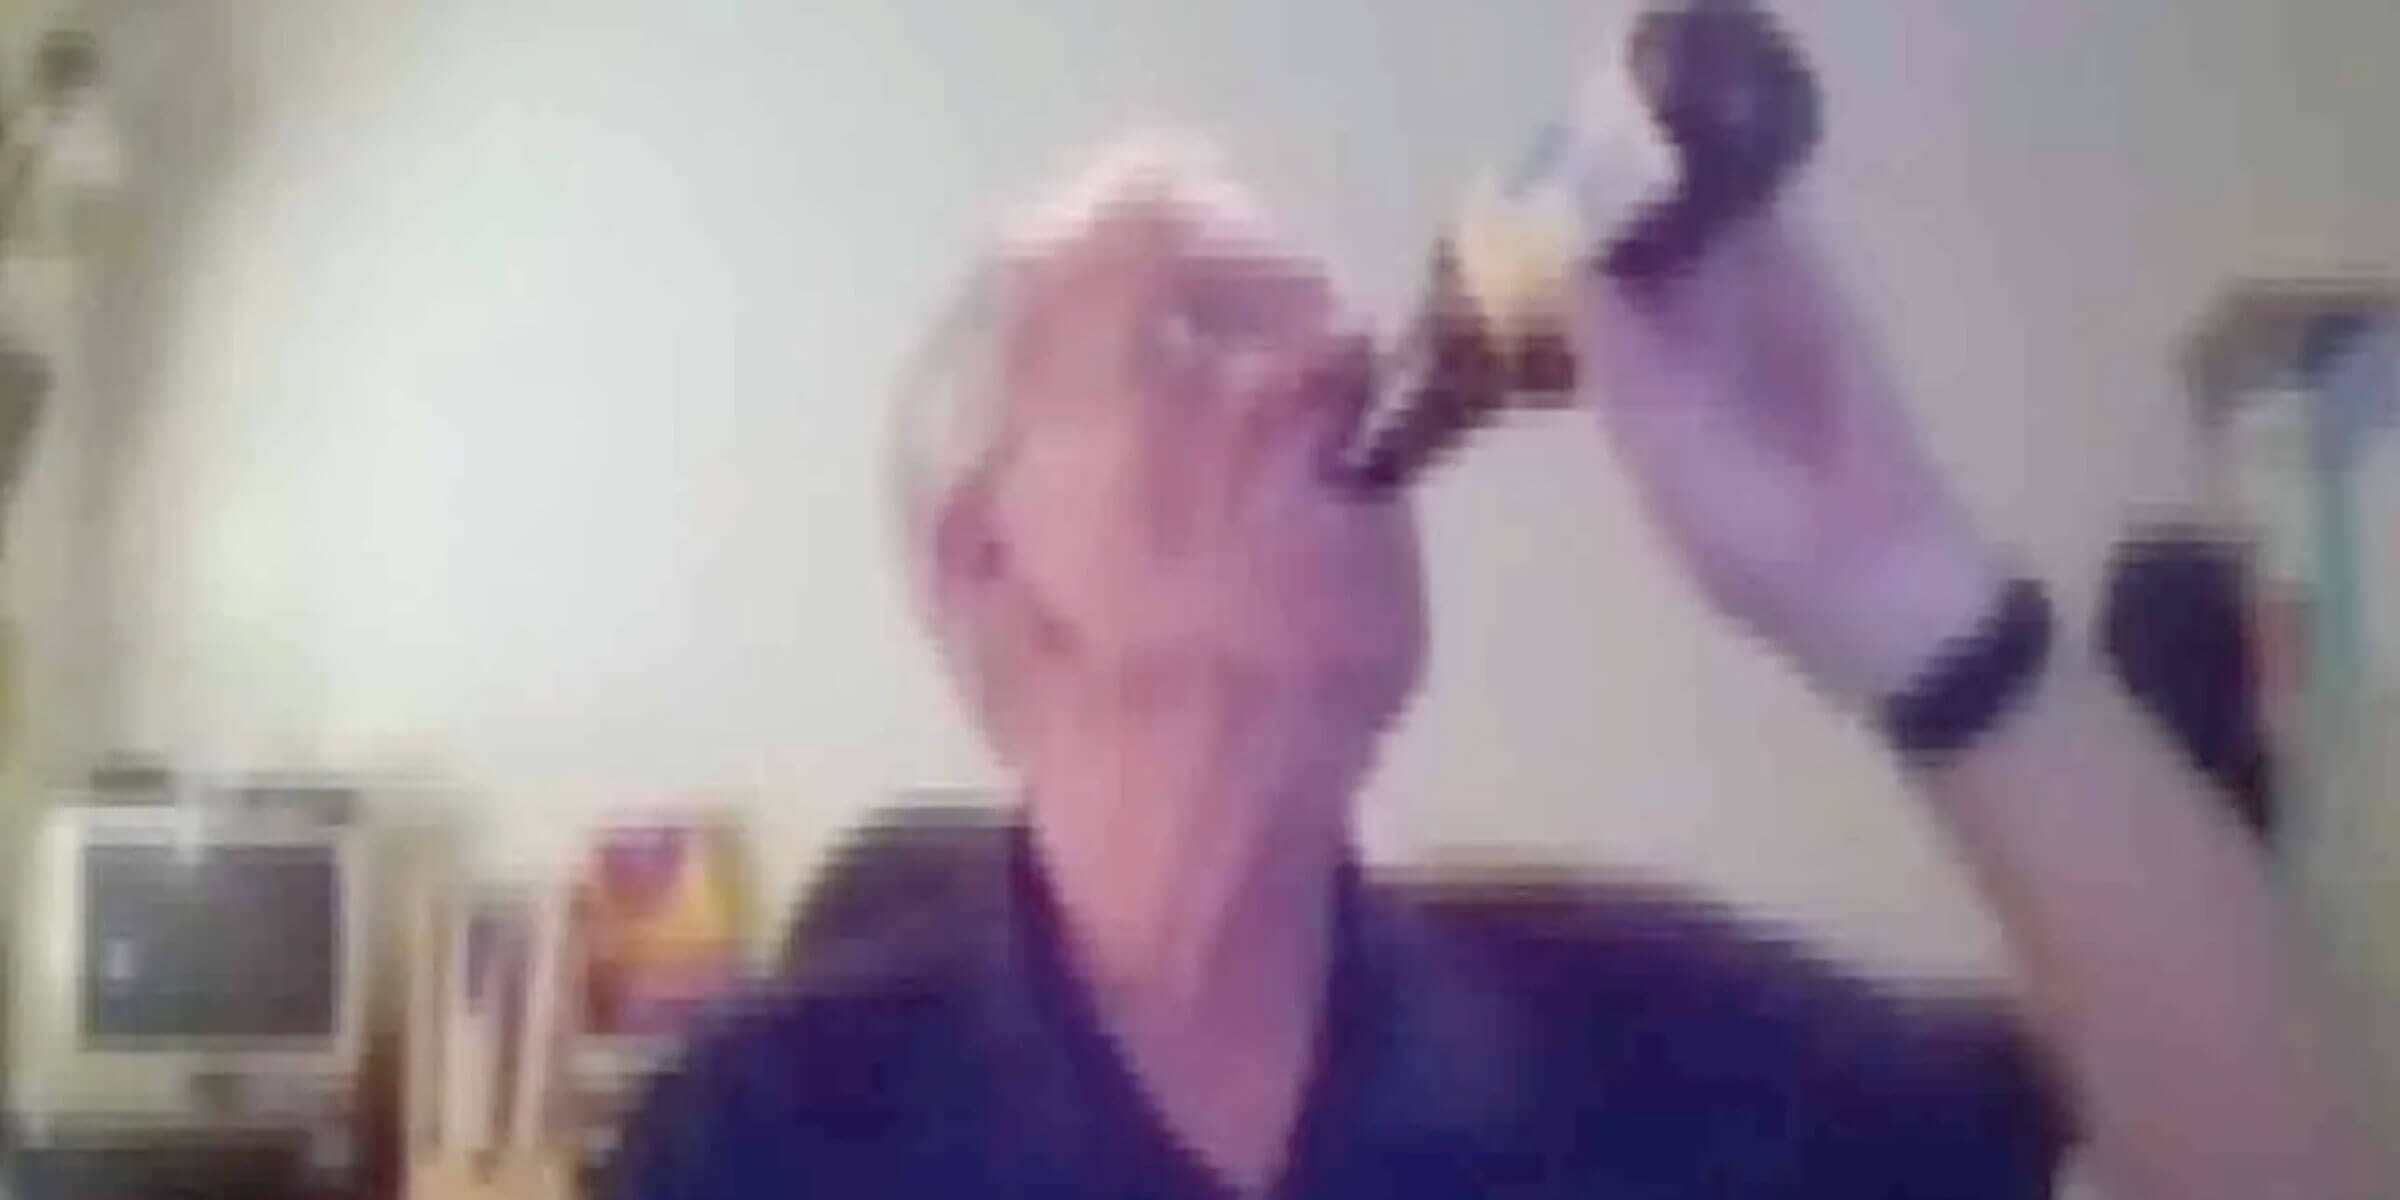 The president of the Charter Oak Unified School Board in Covina, California, apologized for drinking beer during a Zoom video conference earlier this month.